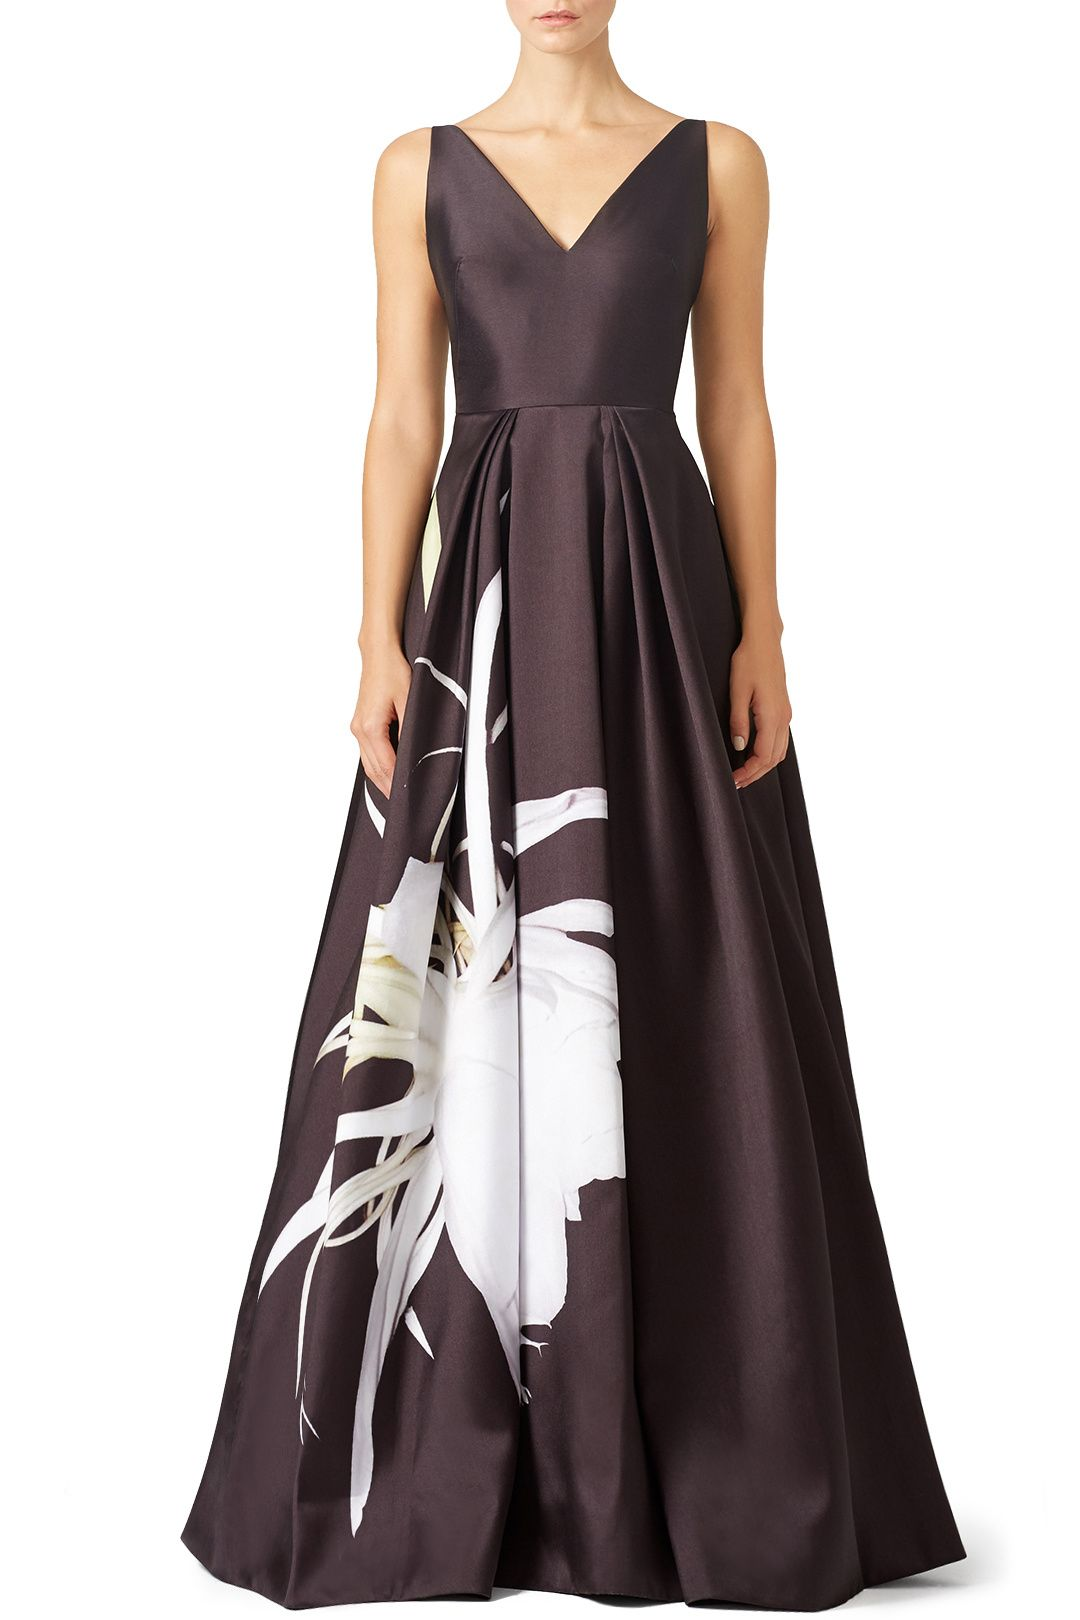 Evening Gowns for Rent in New York